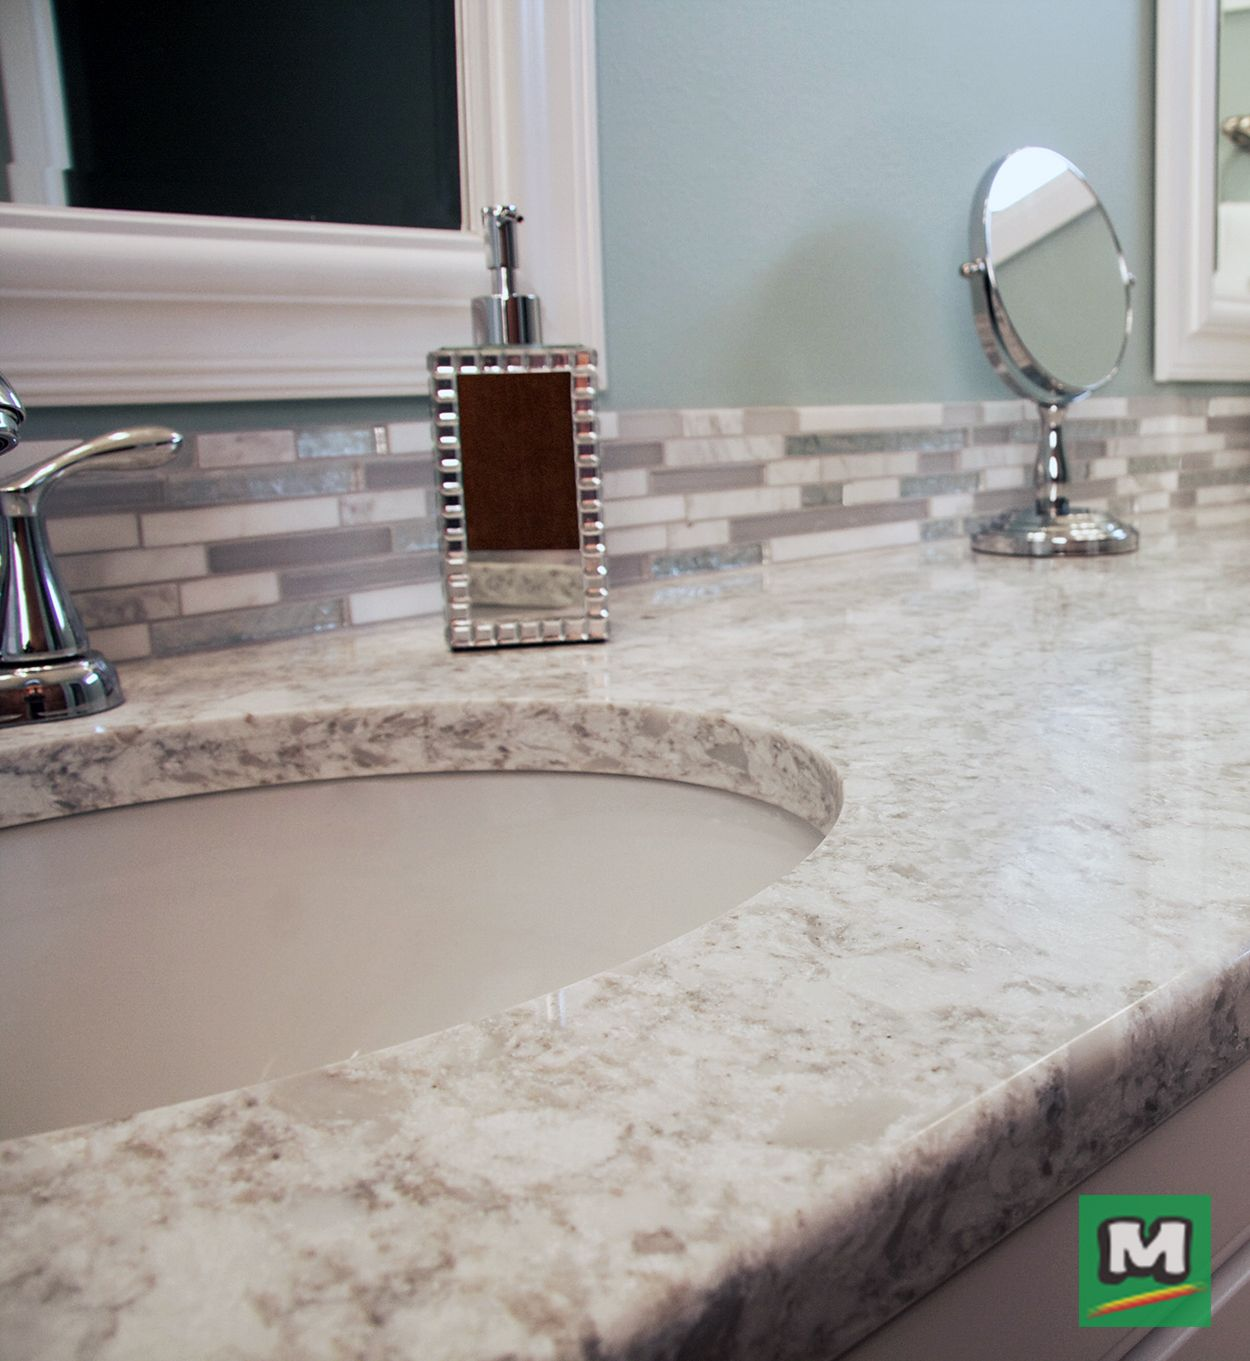 Better Your Bathroom With Riverstone Quartz Countertops Shown In Flaked Pearl Available